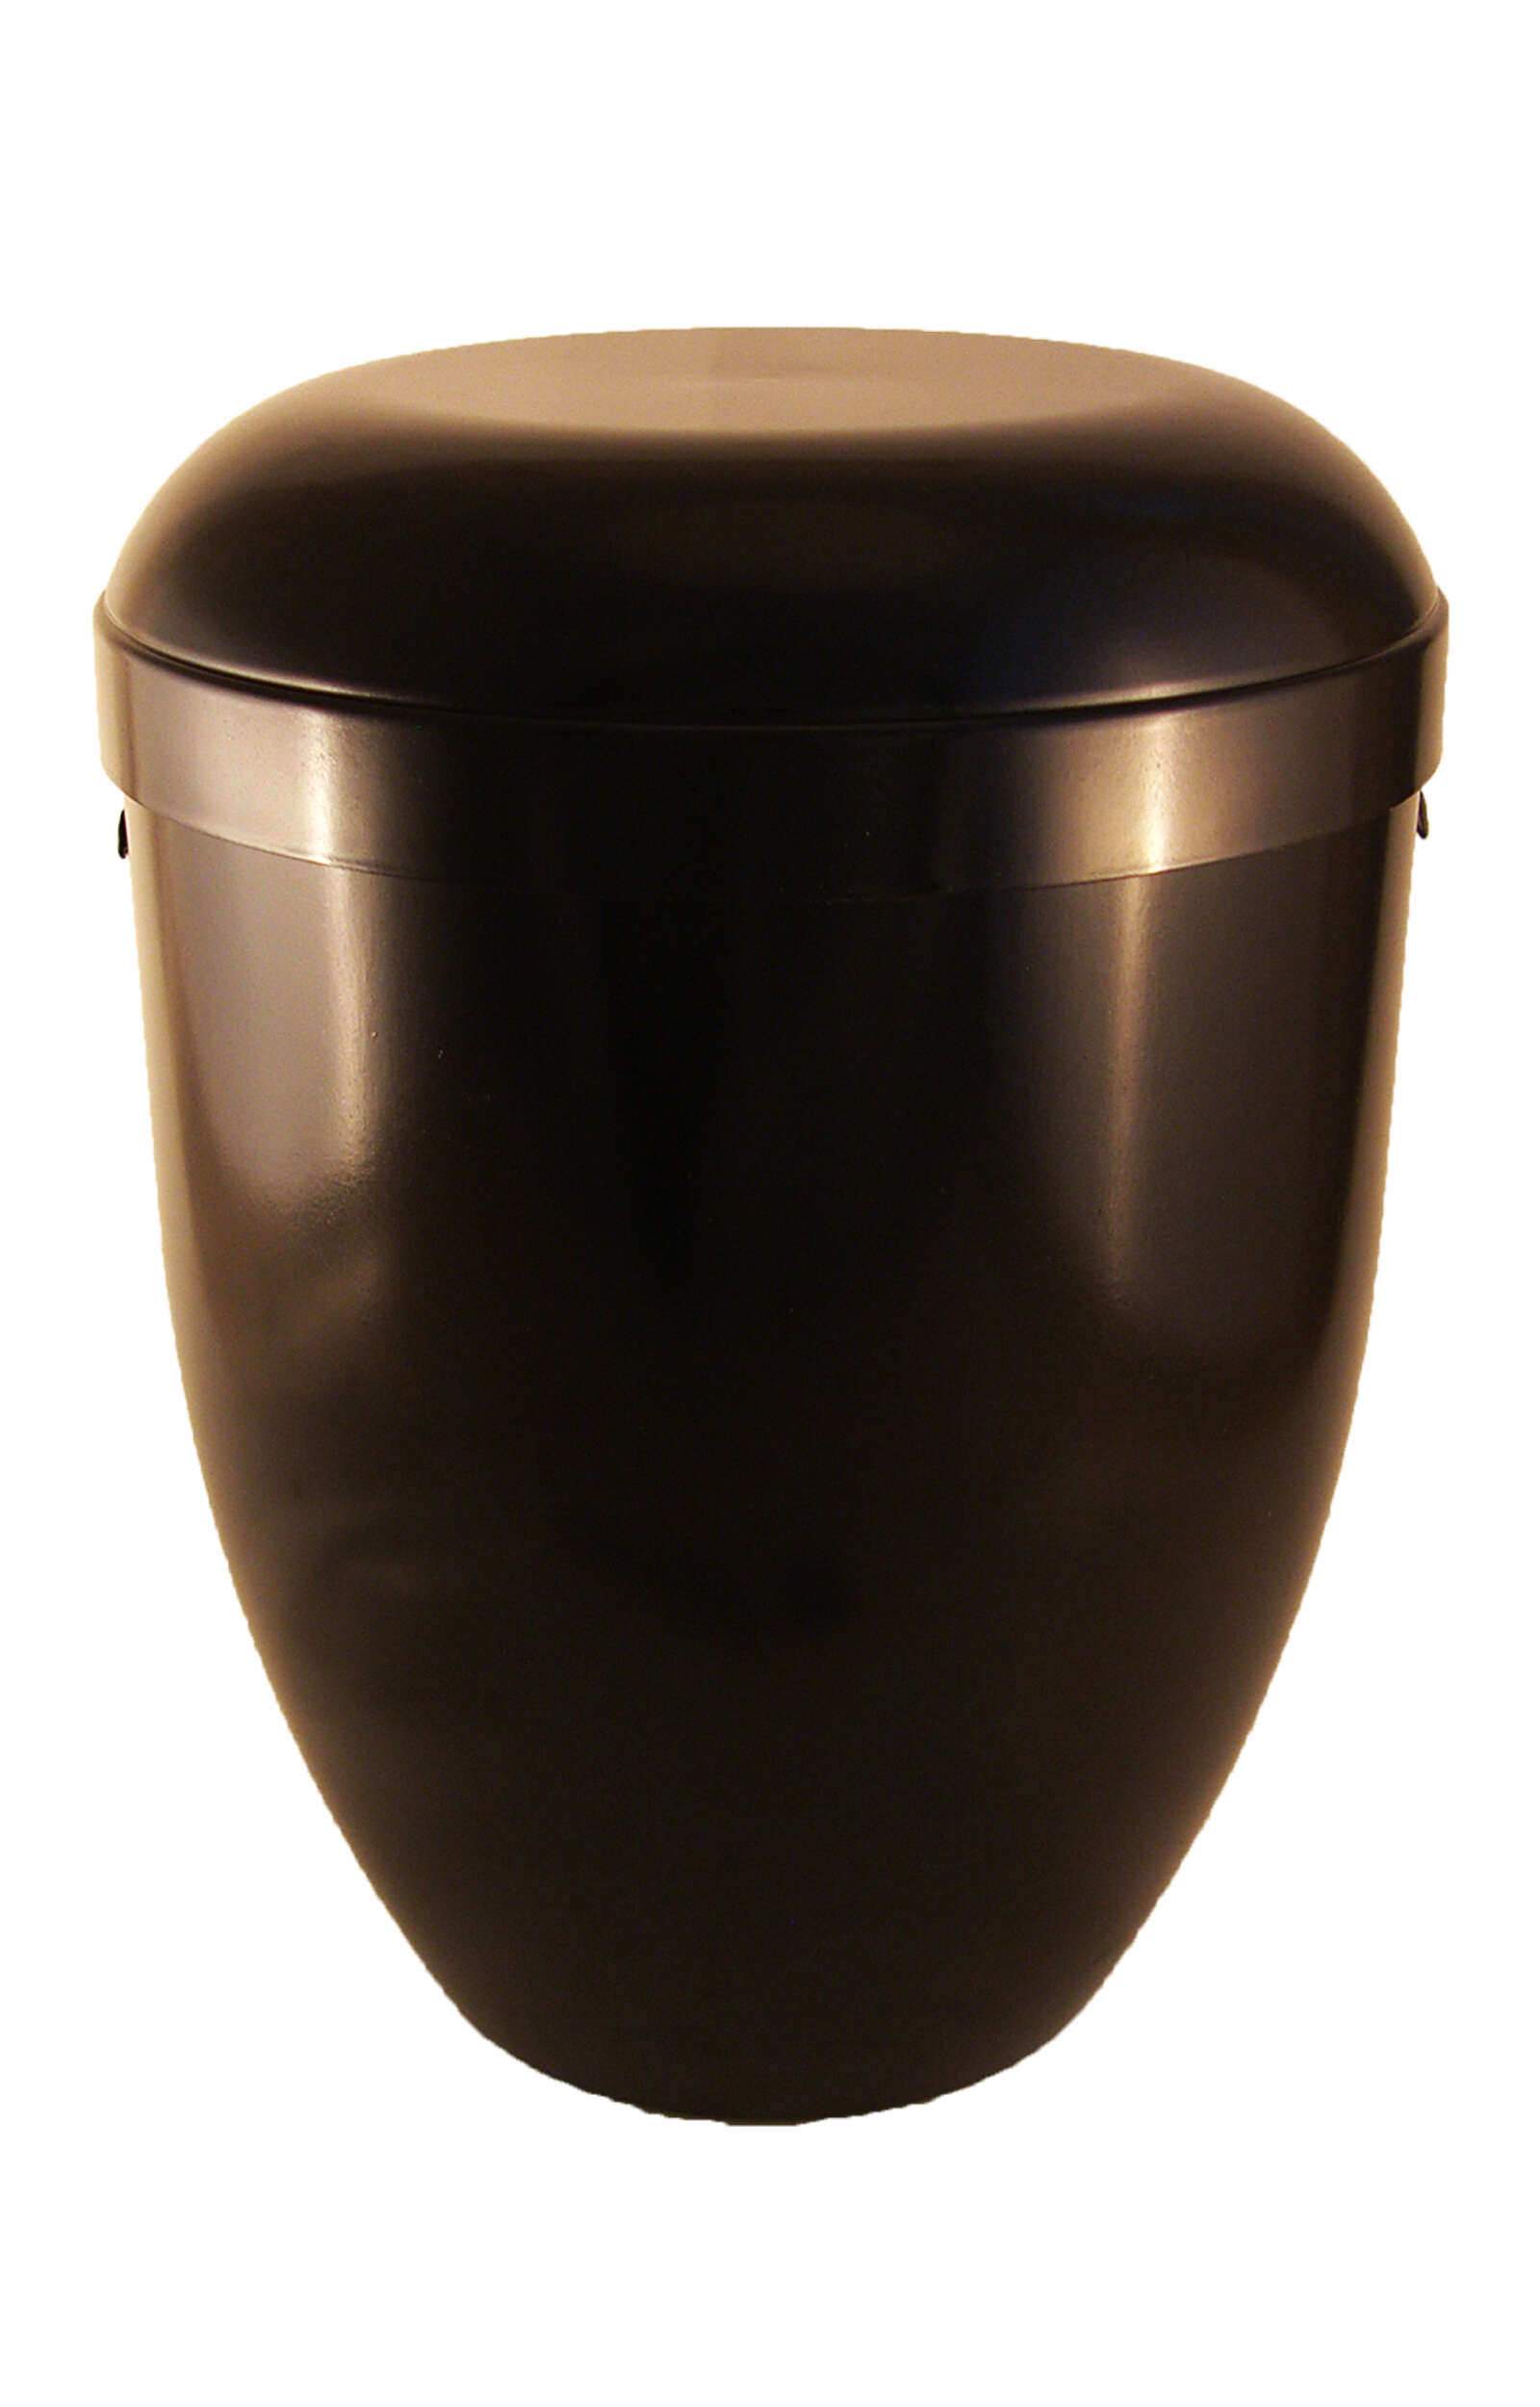 en BS3631 biodigradable urns glossy black funeral urn for human ashes on sale